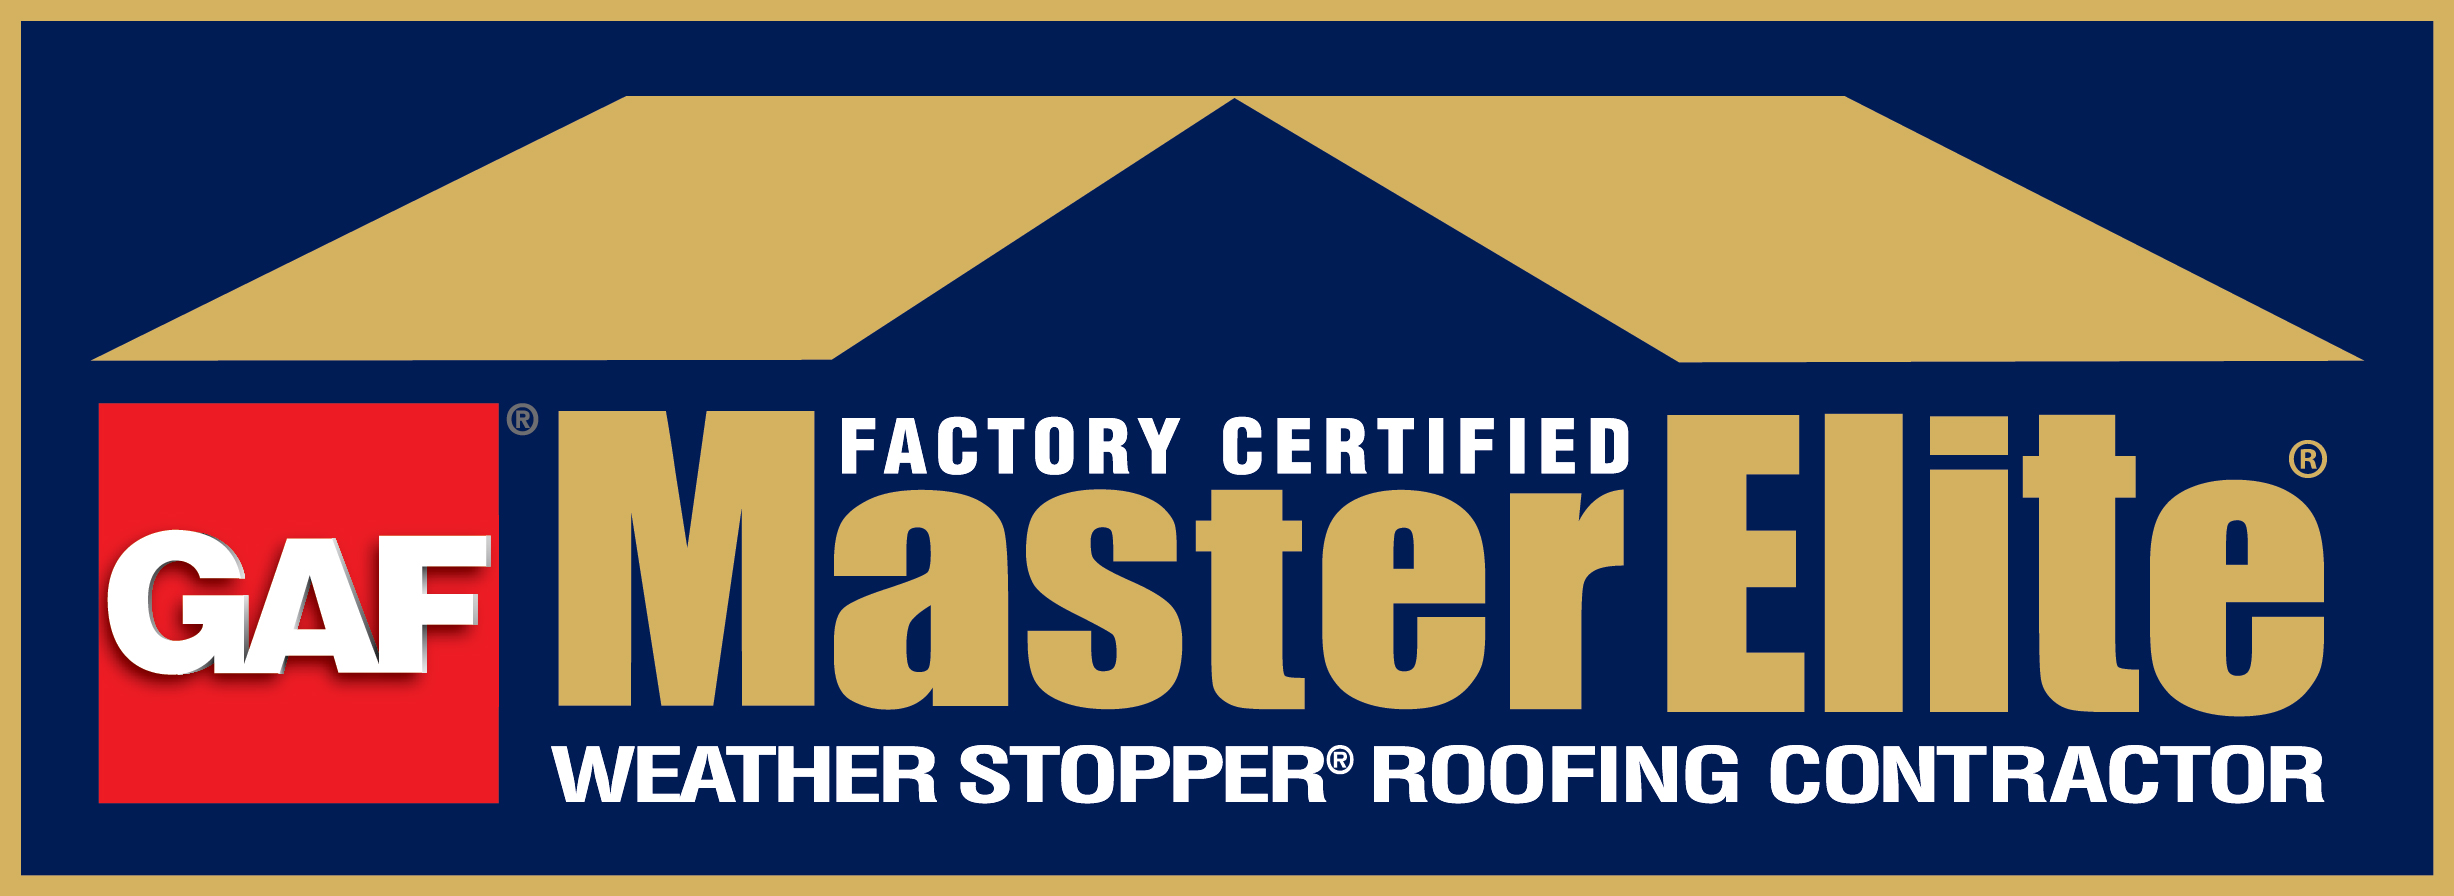 GAF Master Elite Factory Certified